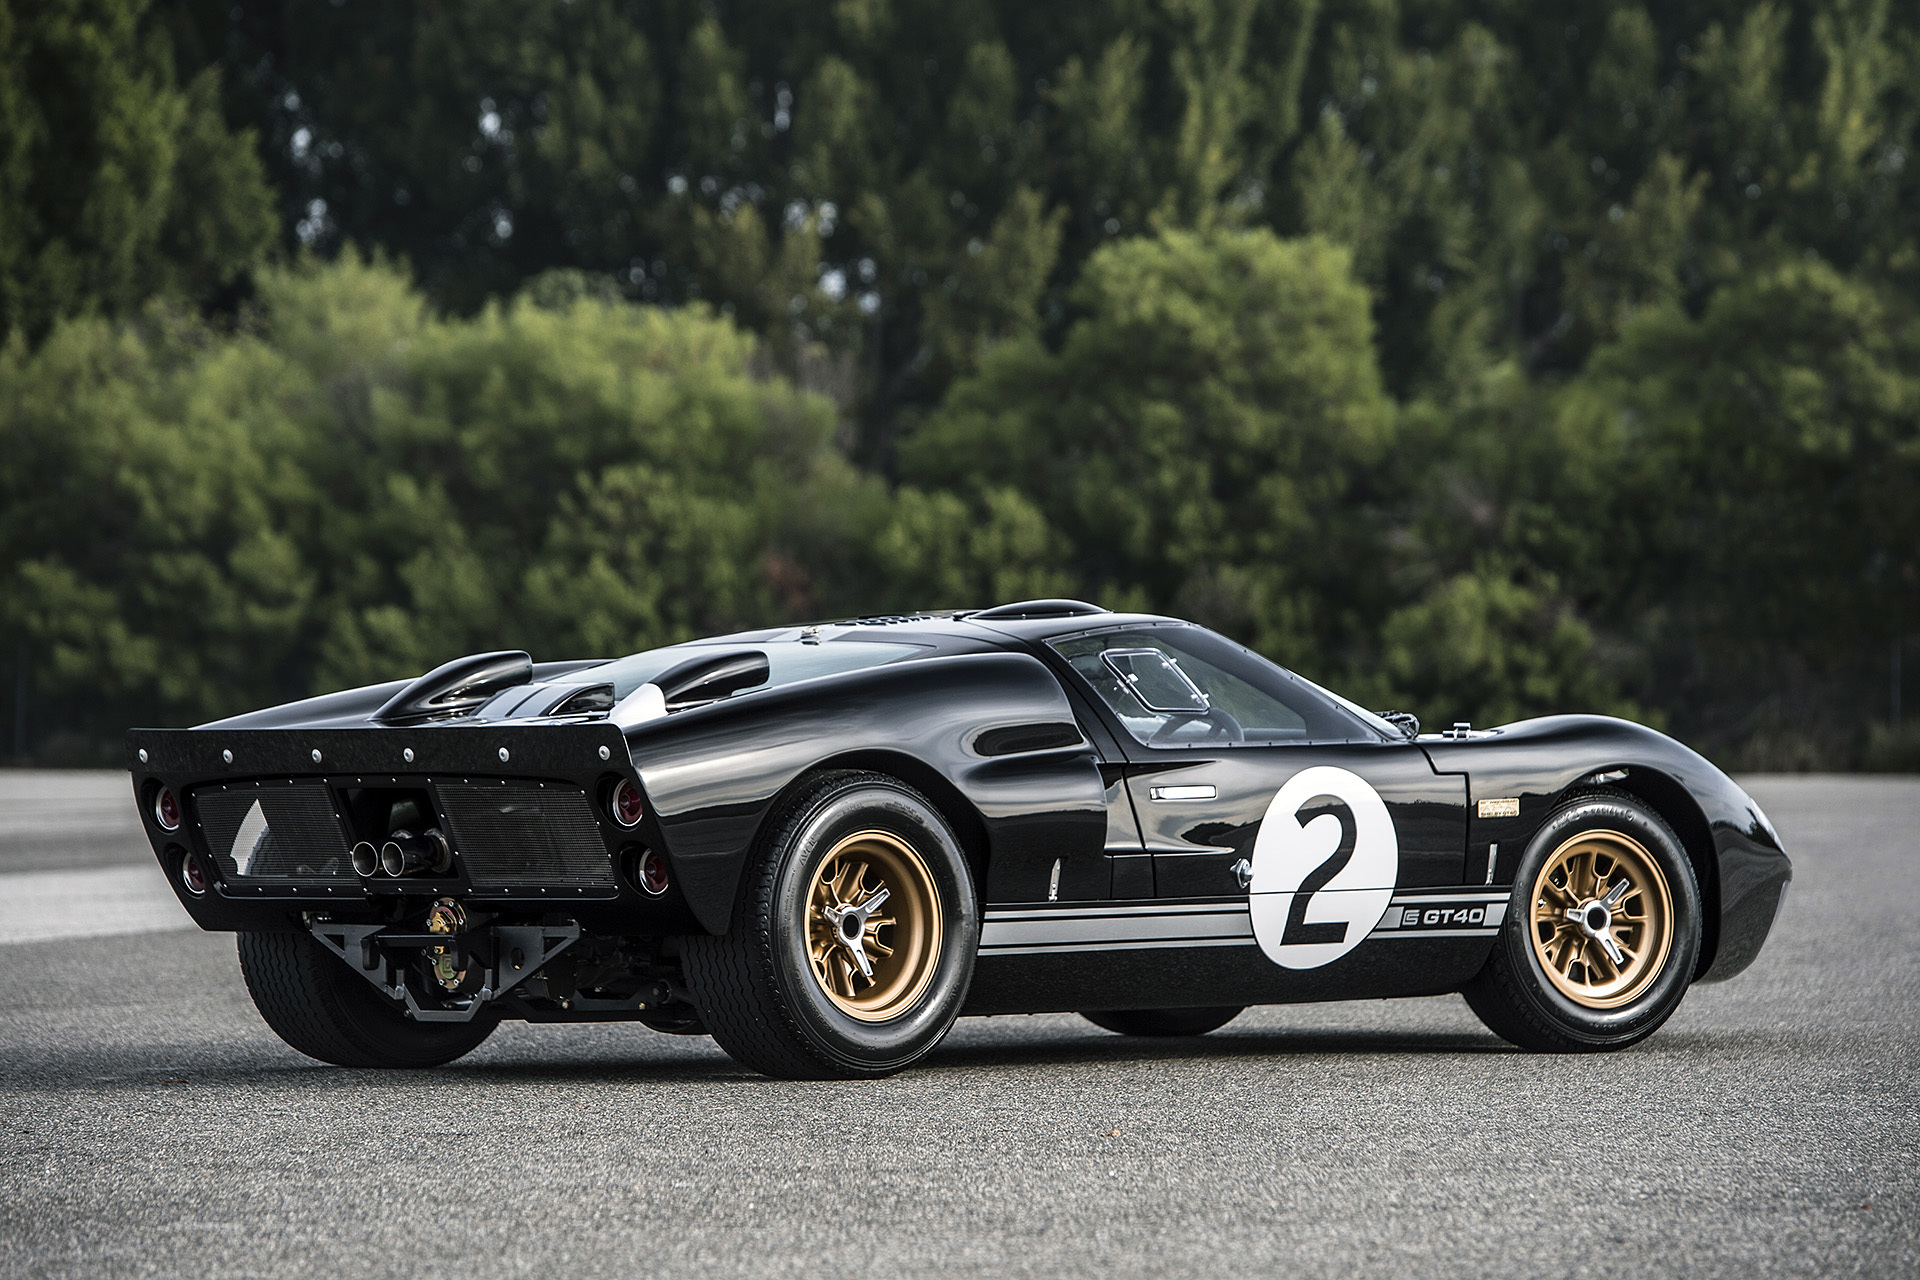 ford gt40 mkii limited edition created especially from superperformance for the 50th anniversary of the 1966 24h le mans victory